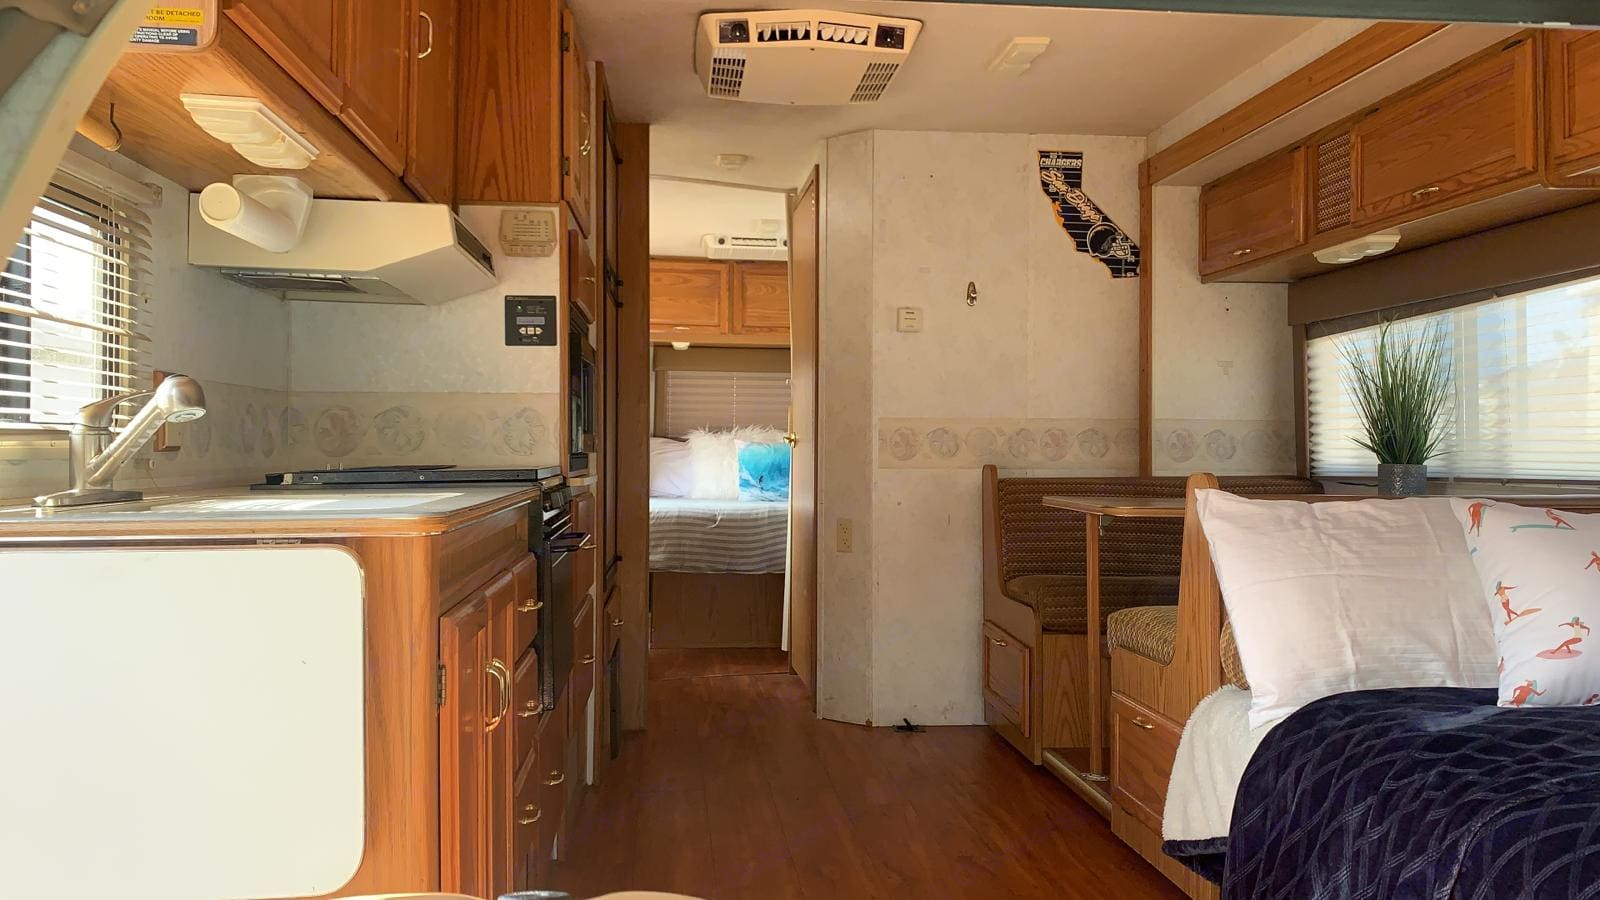 Sofa bed sleeps 2 + dinette converts to bed and sleeps 2 (this entire section slides out). Private rear bedroom w/ queen bed sleeps 2.. Winnebago Minnie Winnie 1999